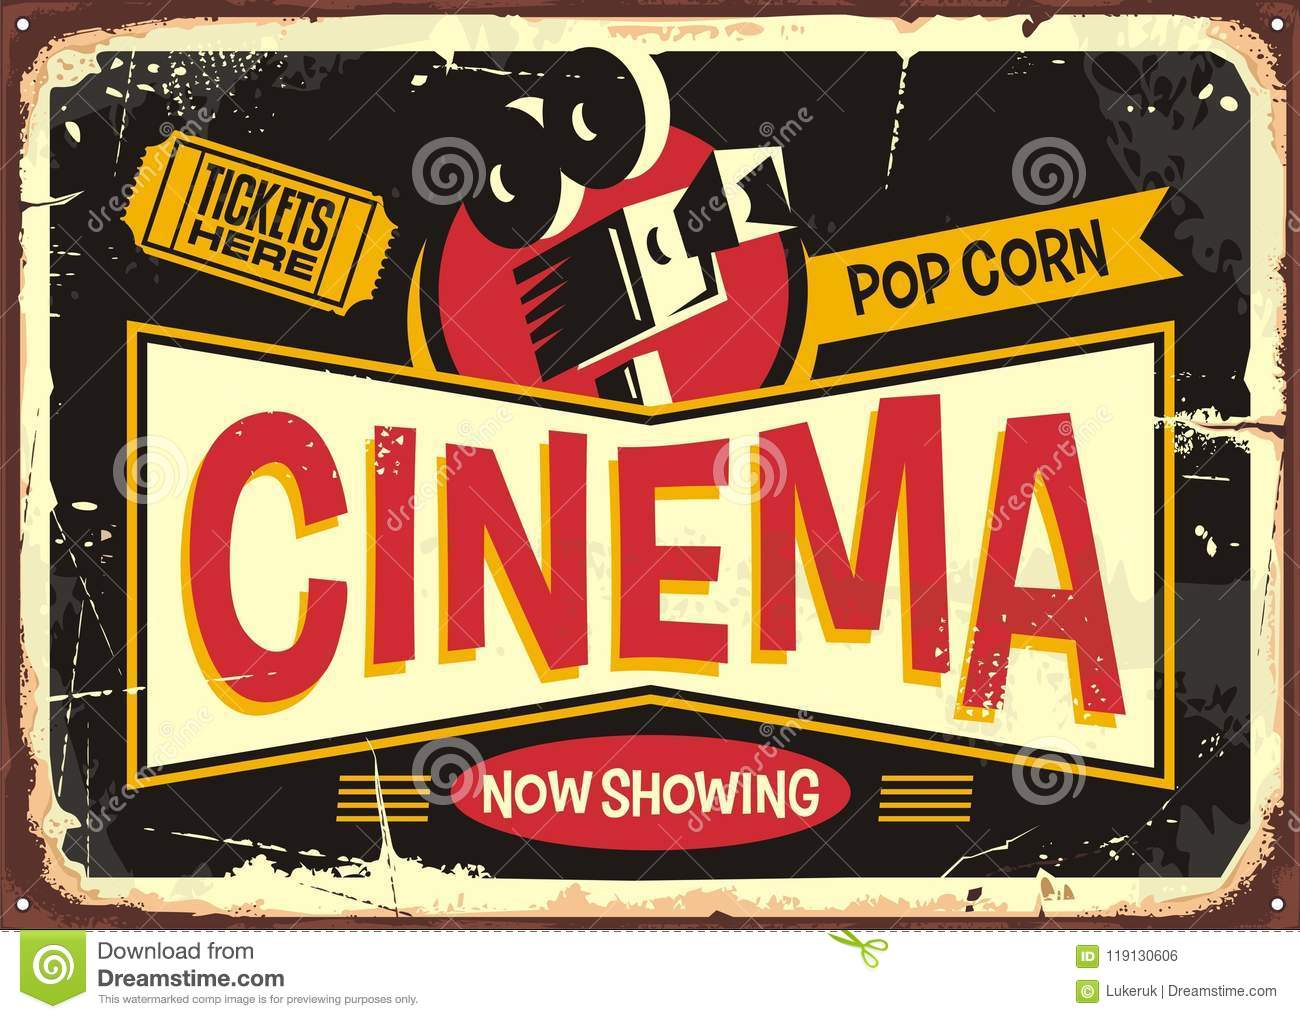 Cinema Retro Tin Sign Vector Design Template Vintage Entertainment Poster Layout With Movie Camera And Ticket On Black Background